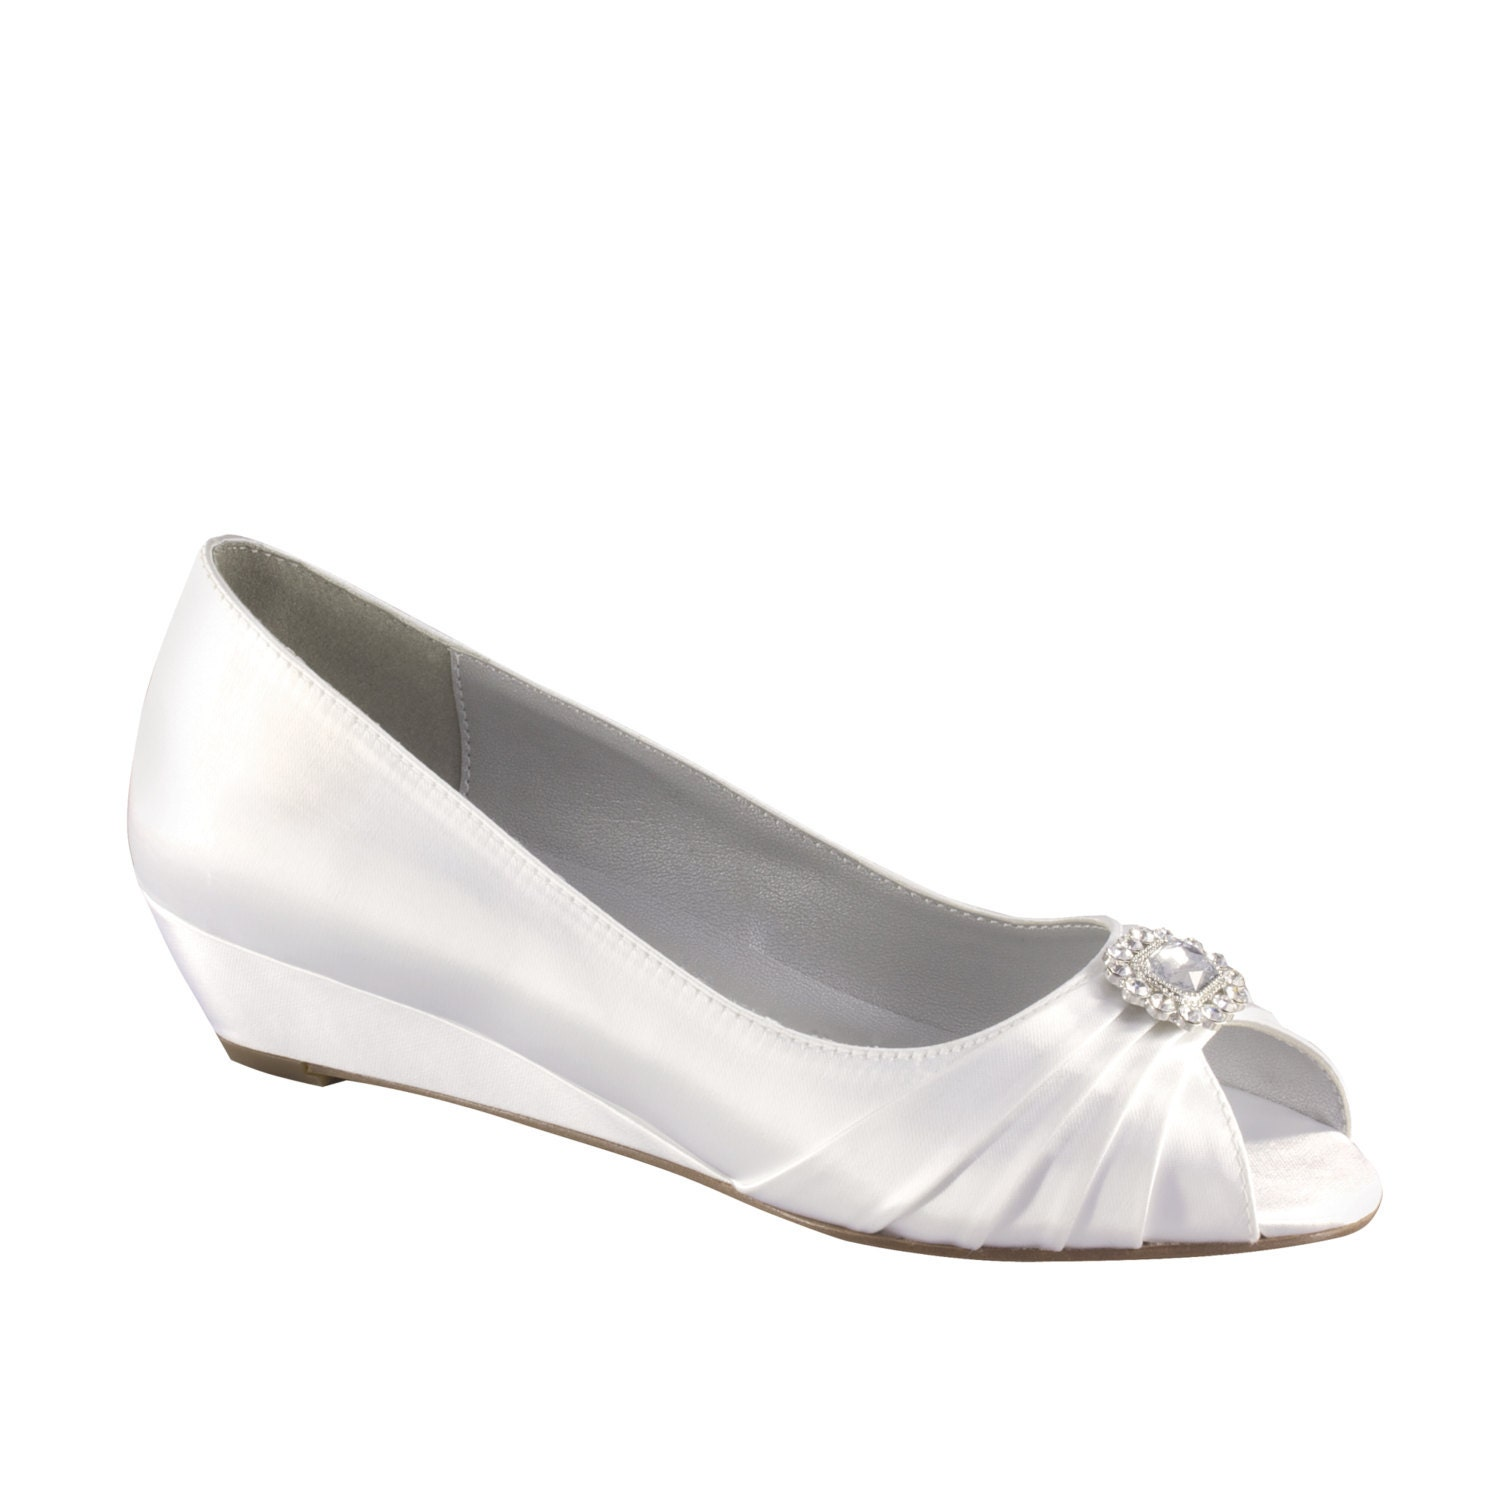 Wedding Shoes Wedge 1 Inch Wedge Heels Size By